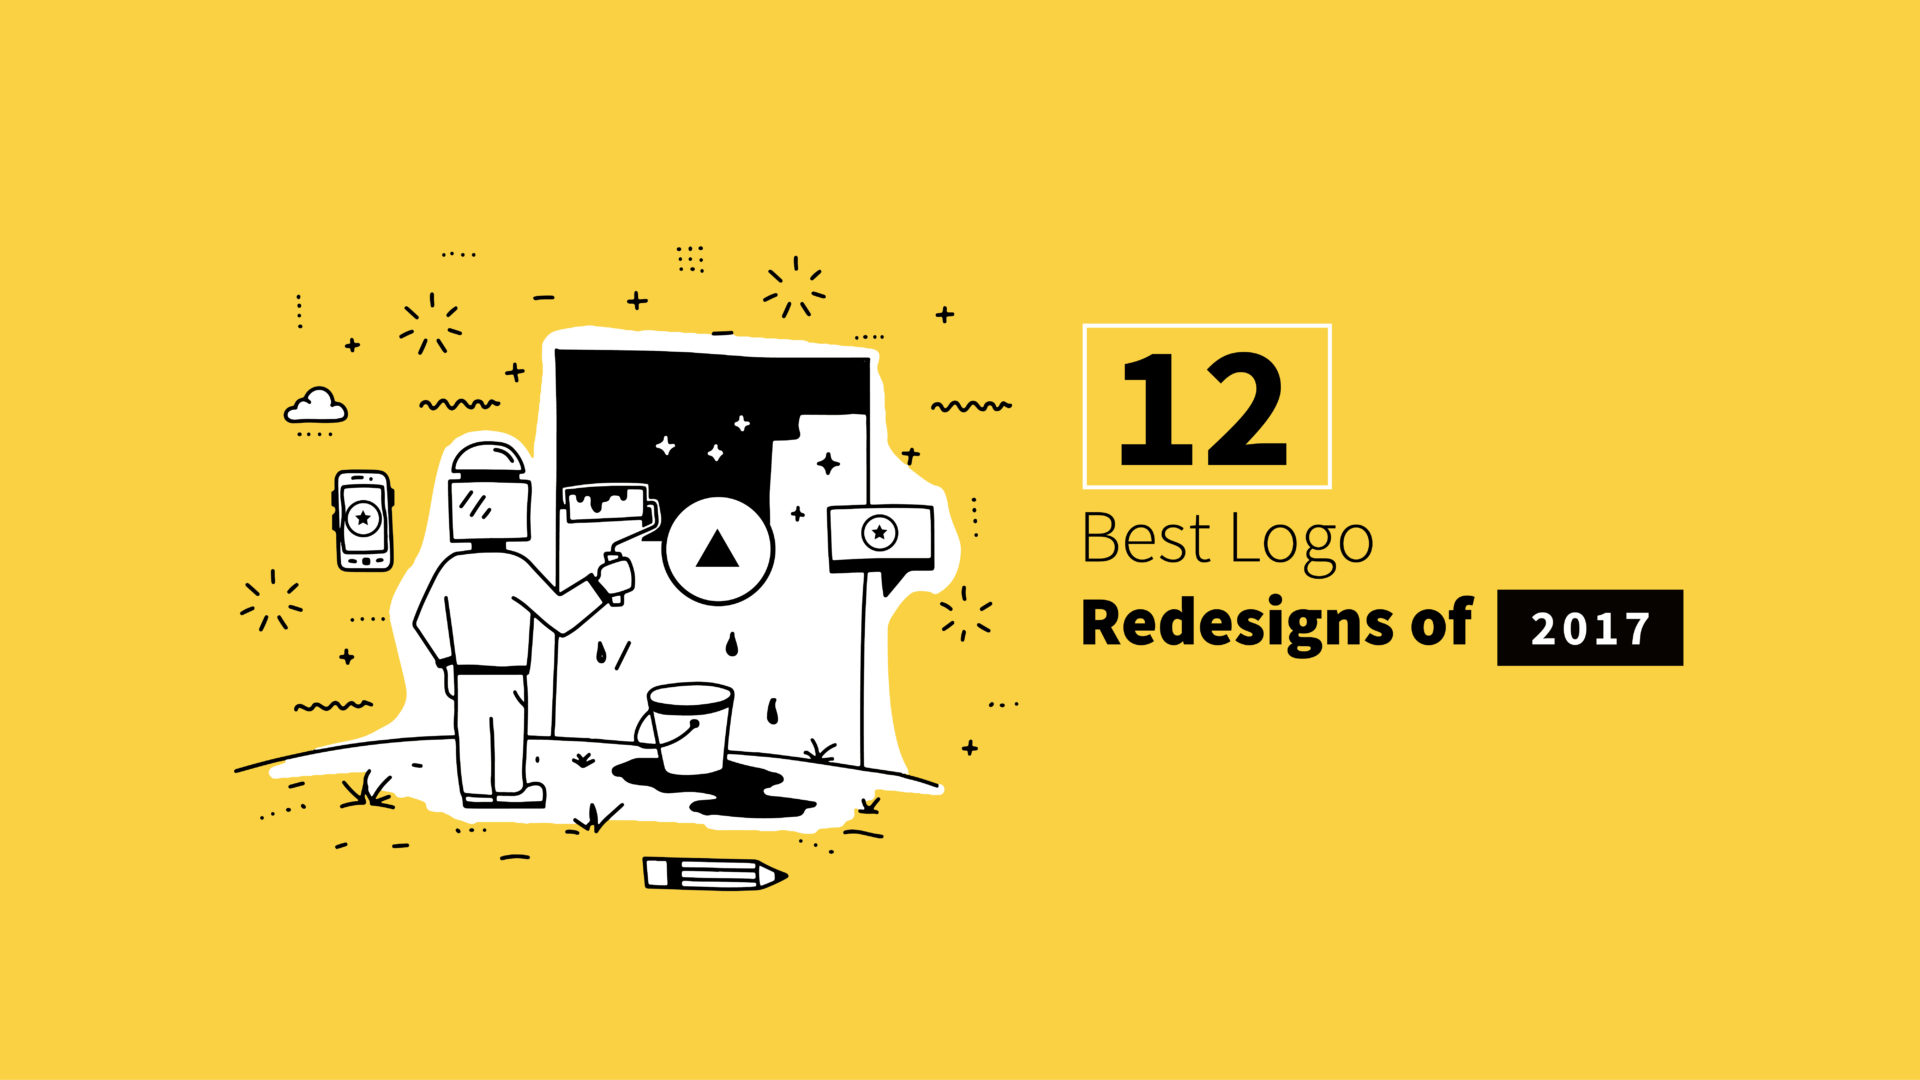 12 Best Logo Redesigns of 2017